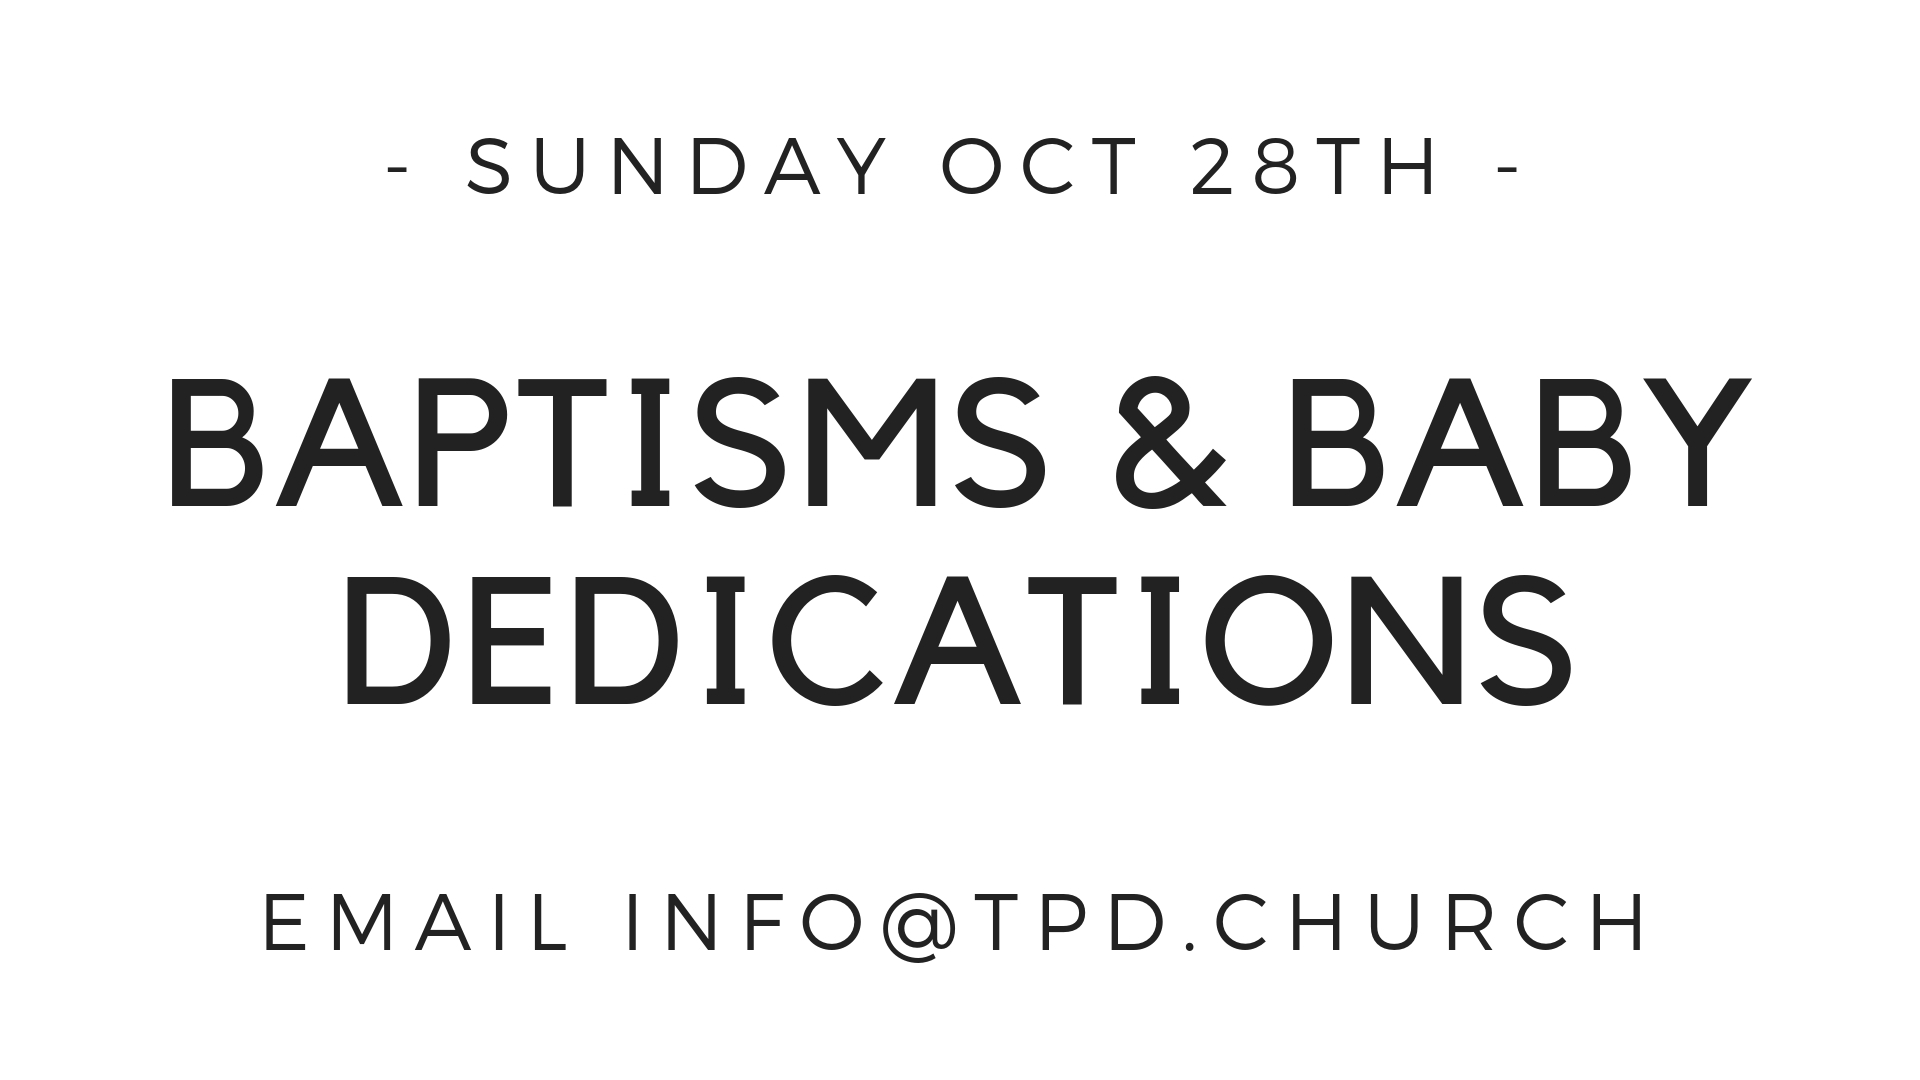 On Sunday Oct. 28, we'll be dedicating more new babies. We'll also have the baptismal set up for any parents who may want to baptize their infants or for any person who is a Christian but has not yet been baptized. If you are interested in either, please email mark@tpd.church.